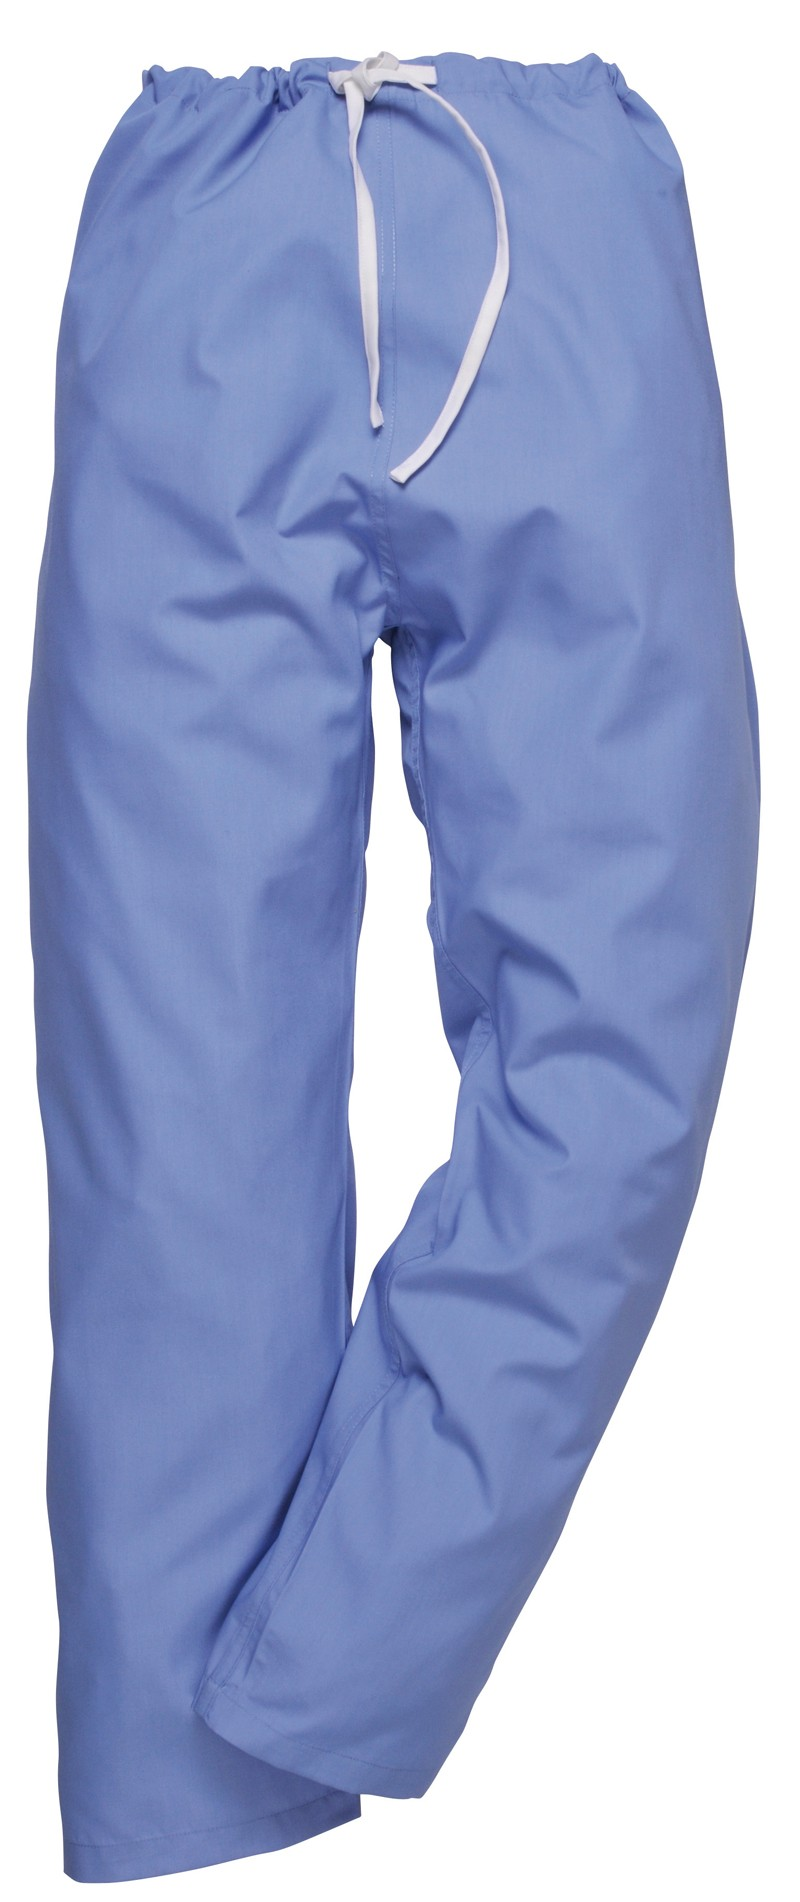 Hospital blue scrub trousers